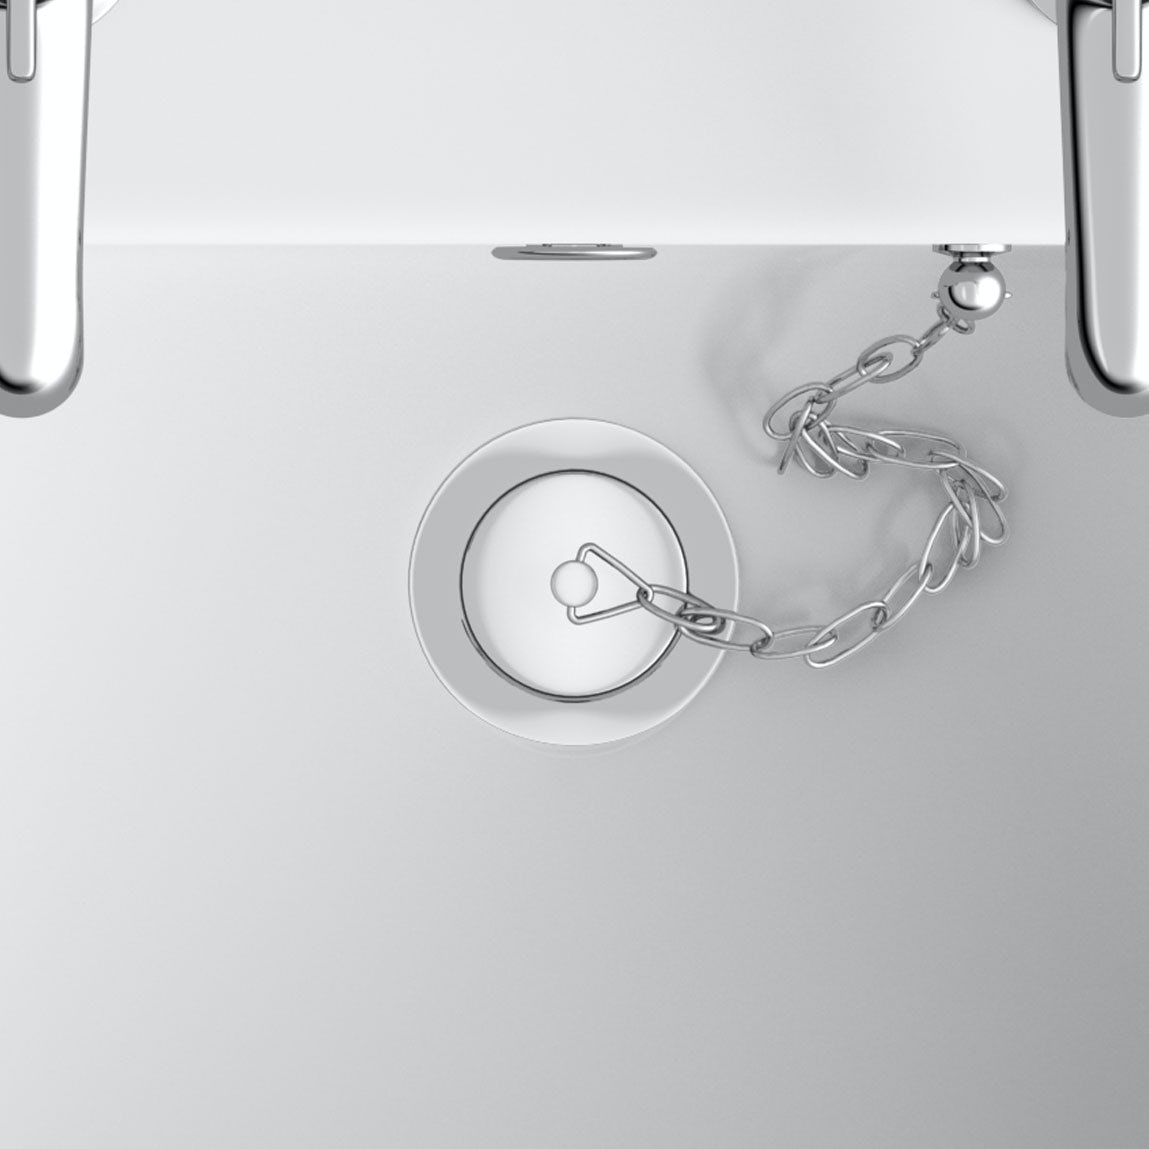 Bathroom wastes and fittings